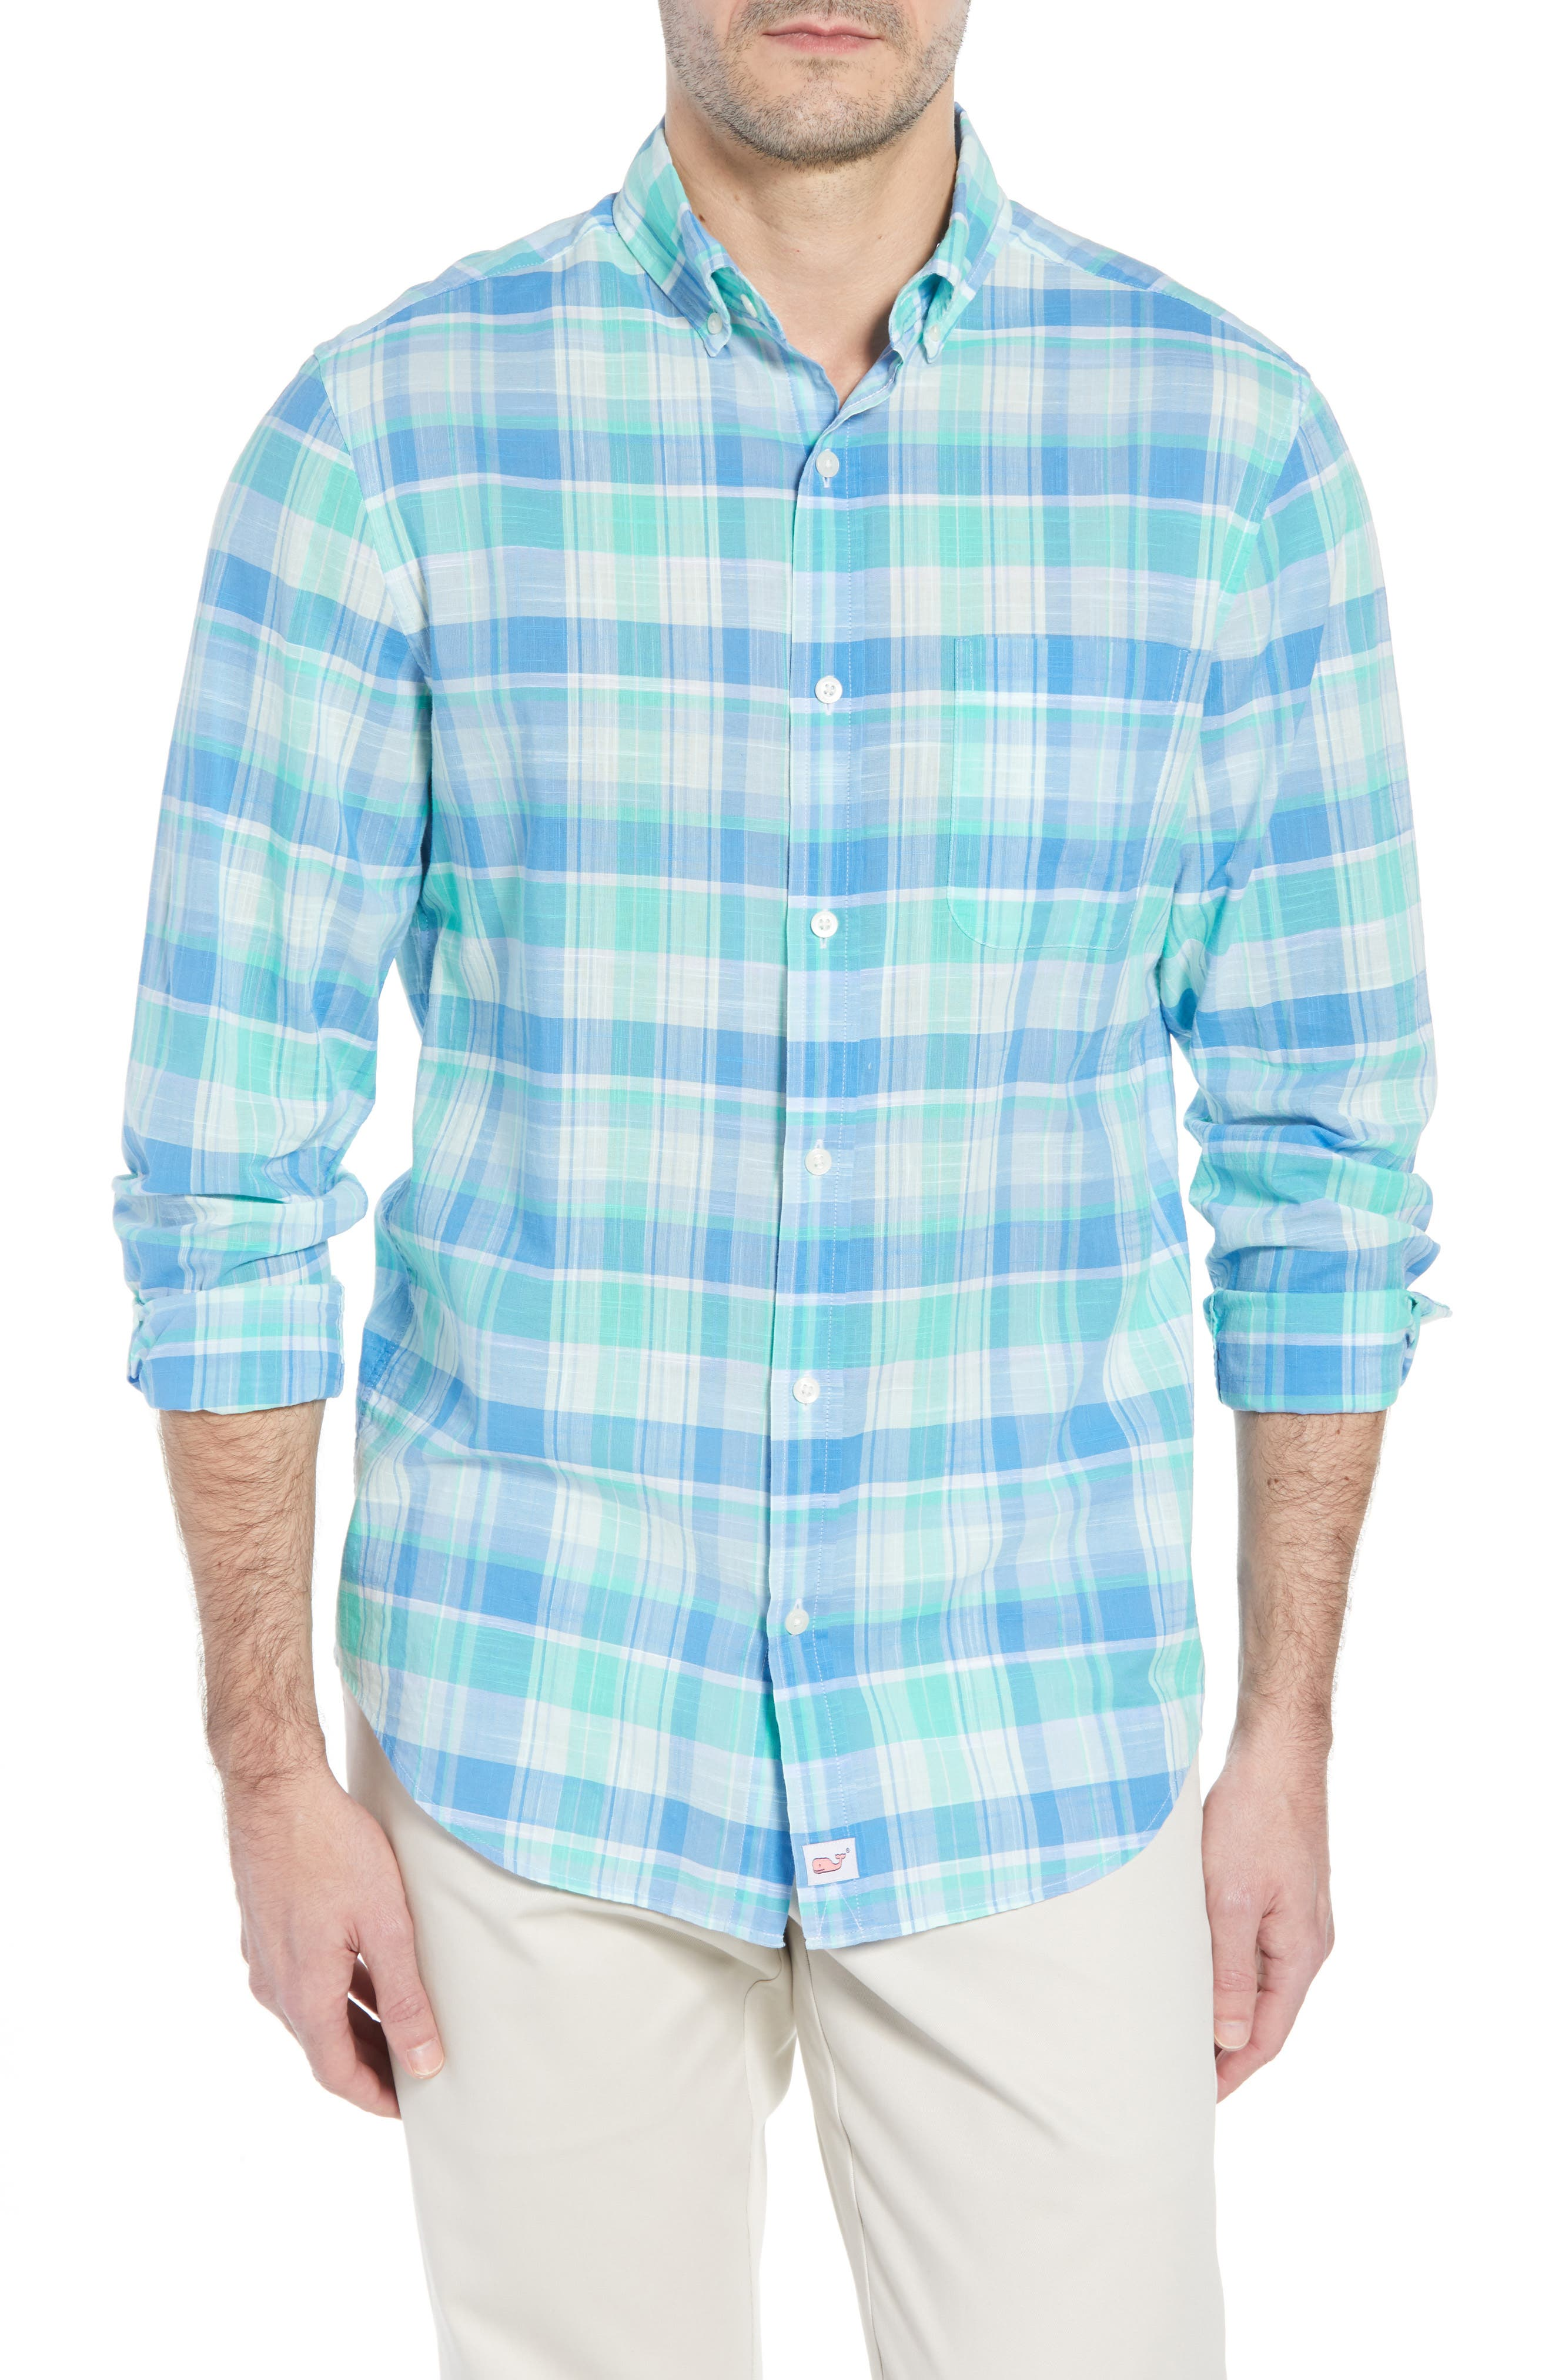 Homer Pond Murray Classic Fit Plaid Sport Shirt,                             Main thumbnail 1, color,                             Antigua Green